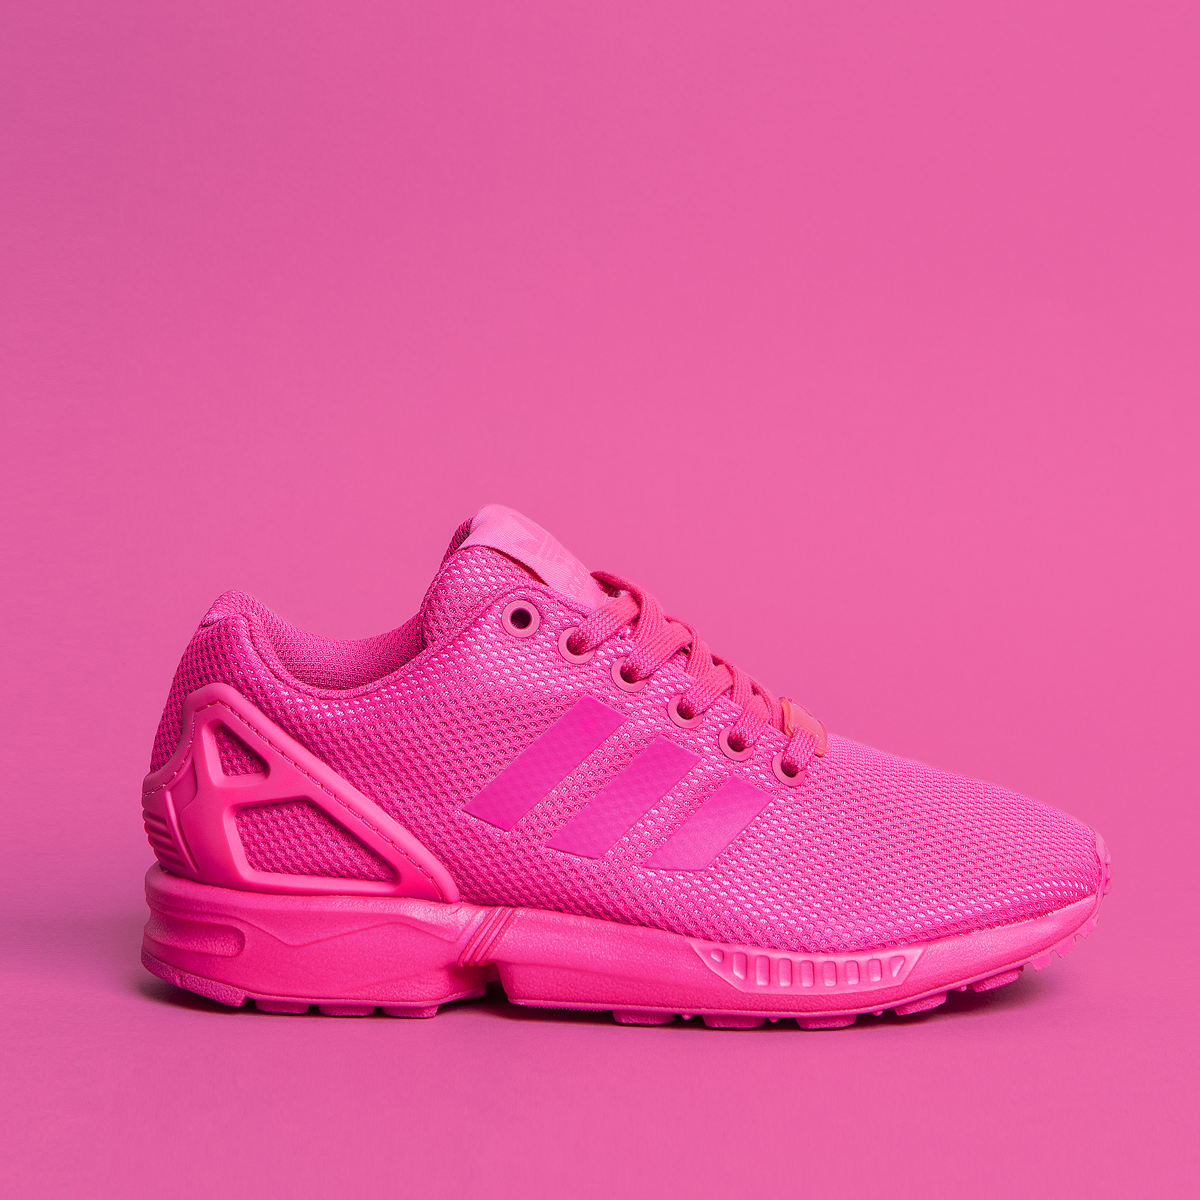 7b7197163 We re going back to the fuschia. Adidas Flux